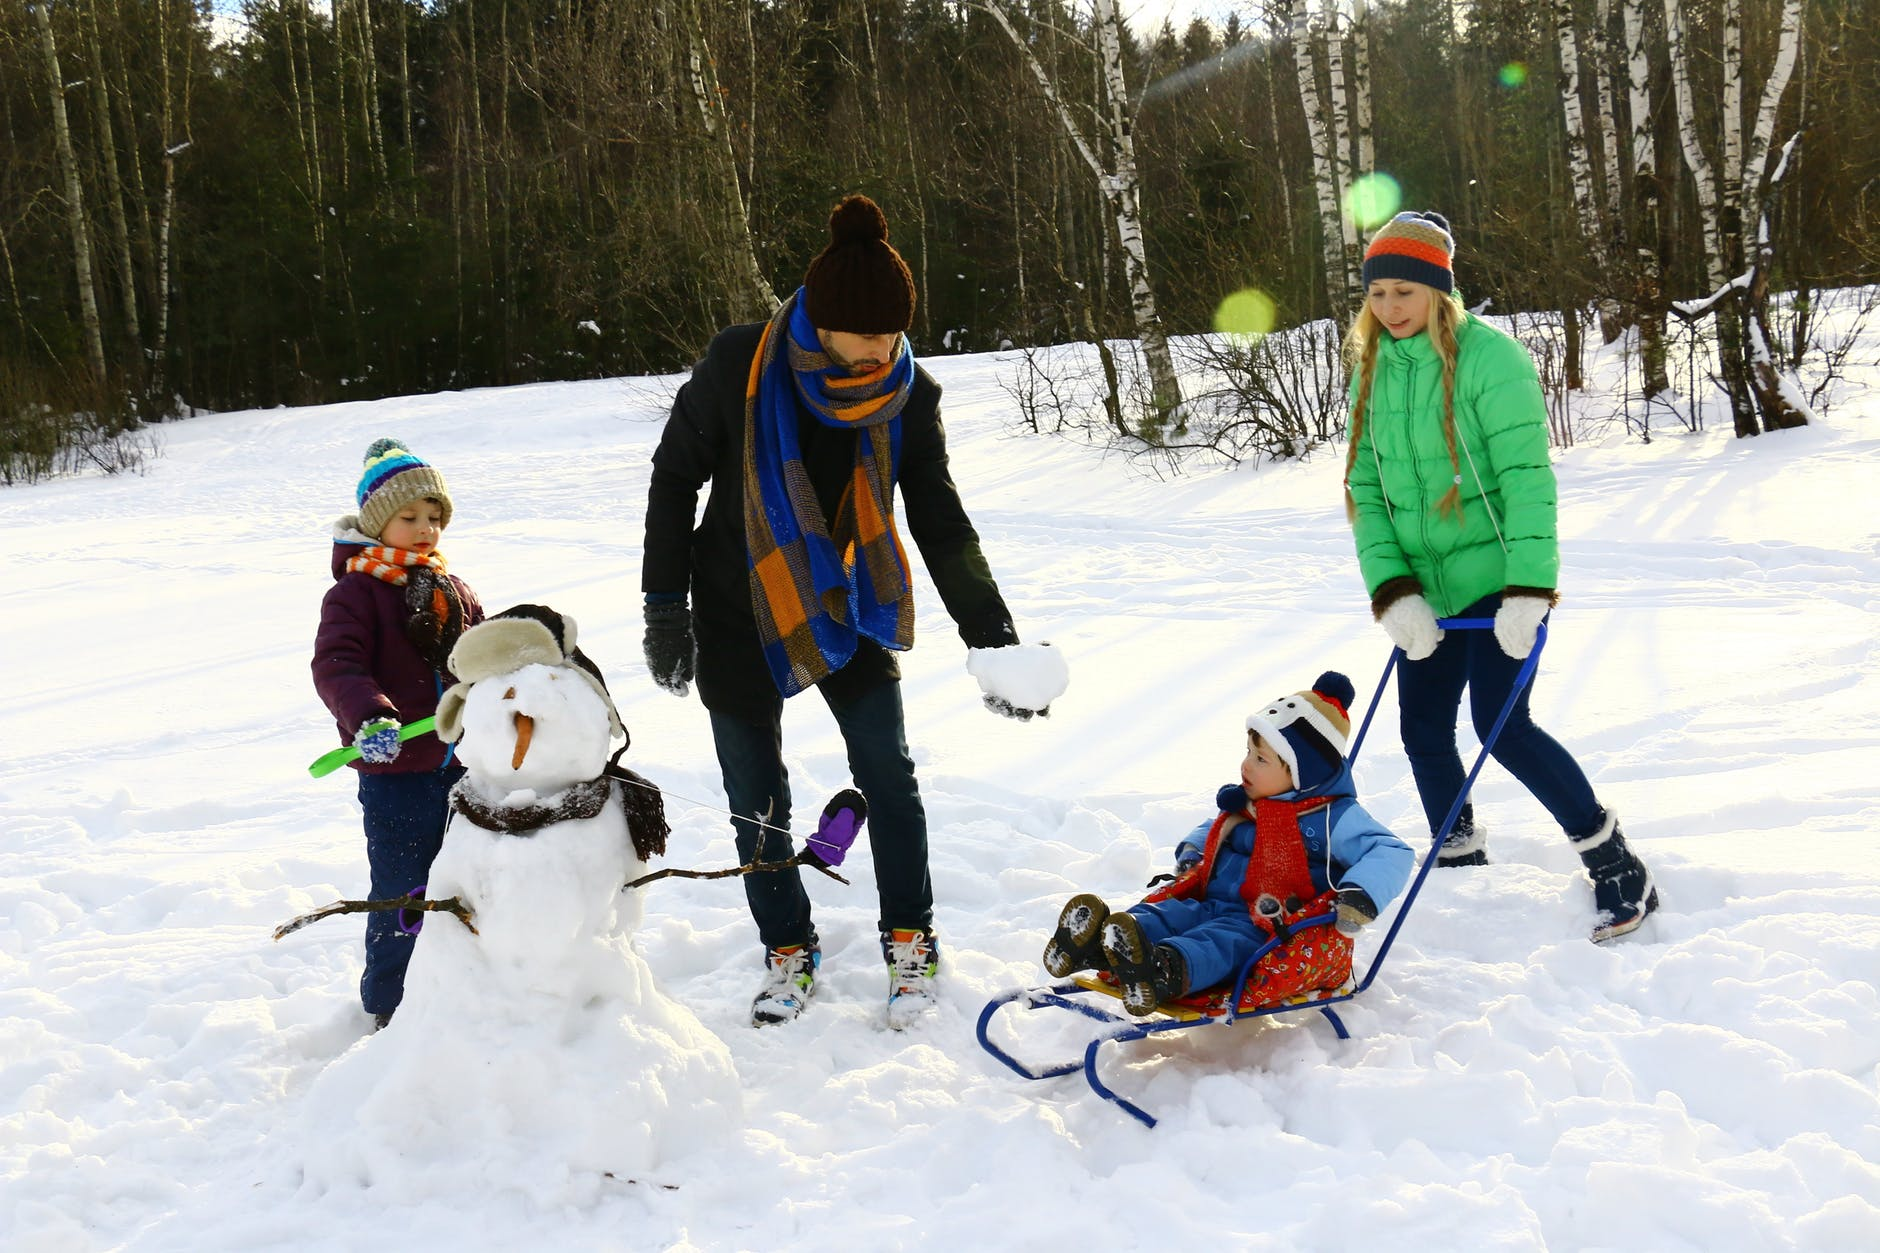 WINTER WEEKENDS AND SCHOOL HOLIDAYS: COLD TEMPERATURES CAN BE A CHALLENGE